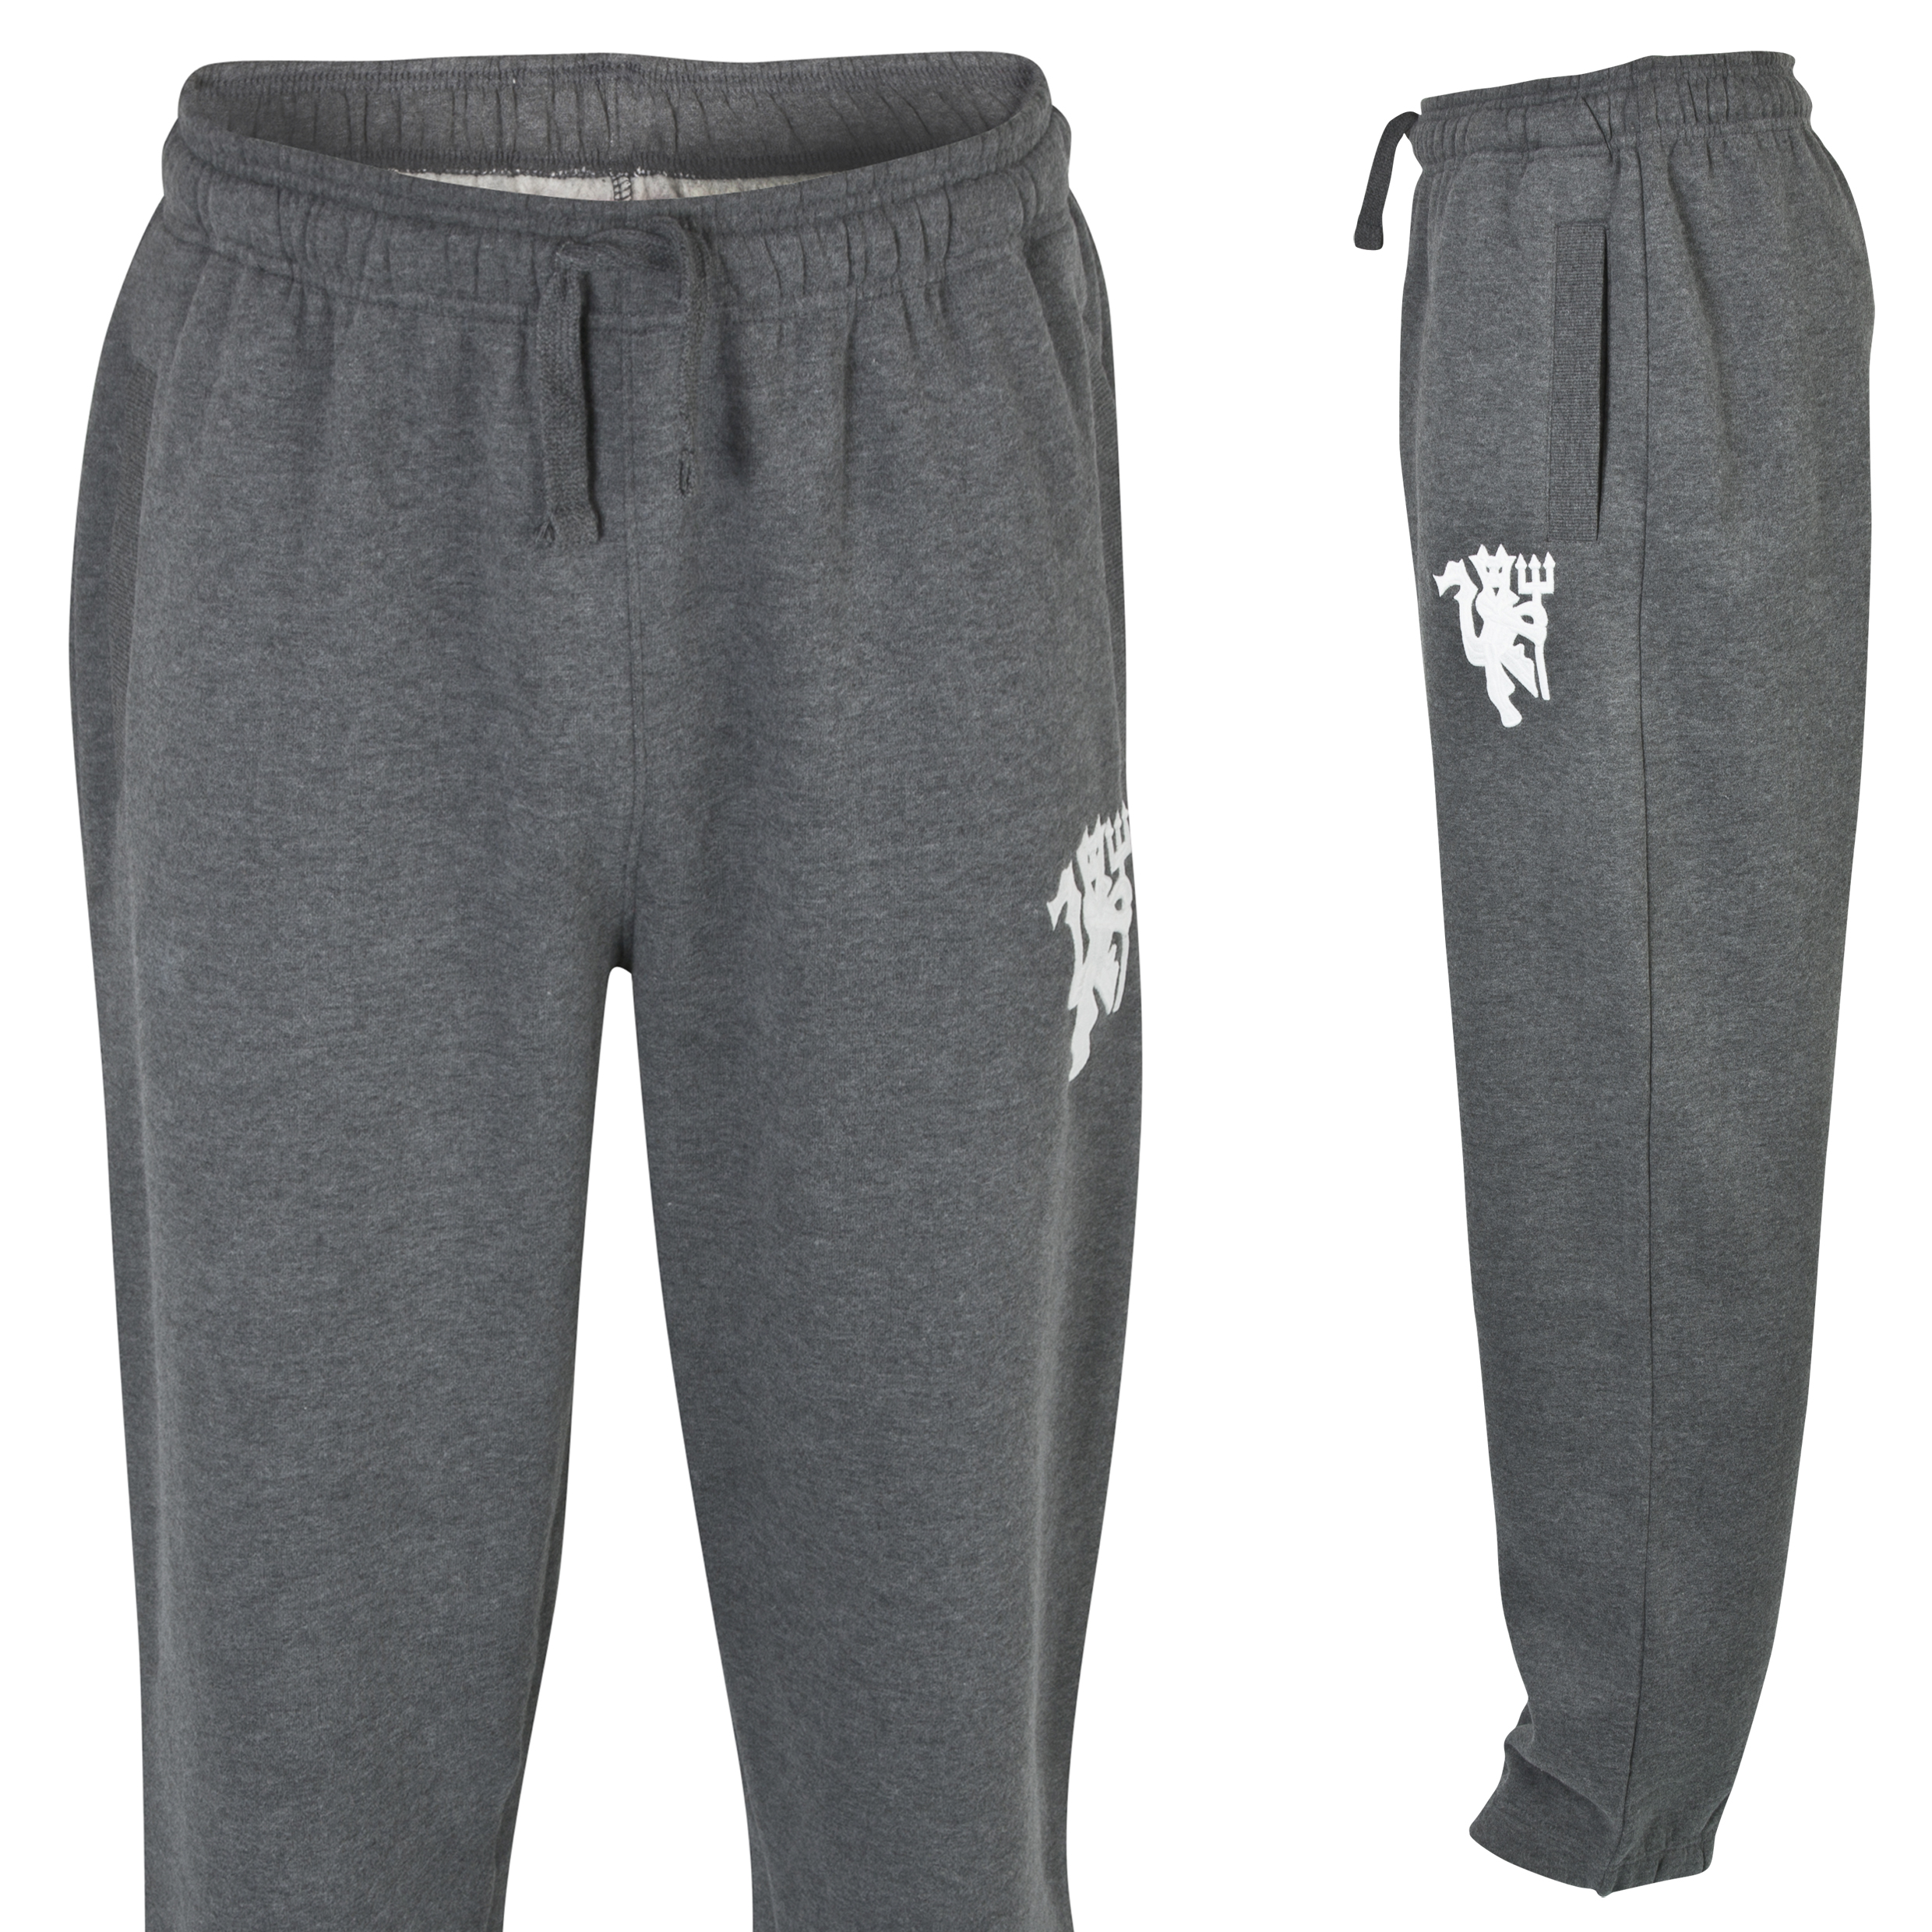 Manchester United Heritage Fleece Joggers - Mens Charcoal